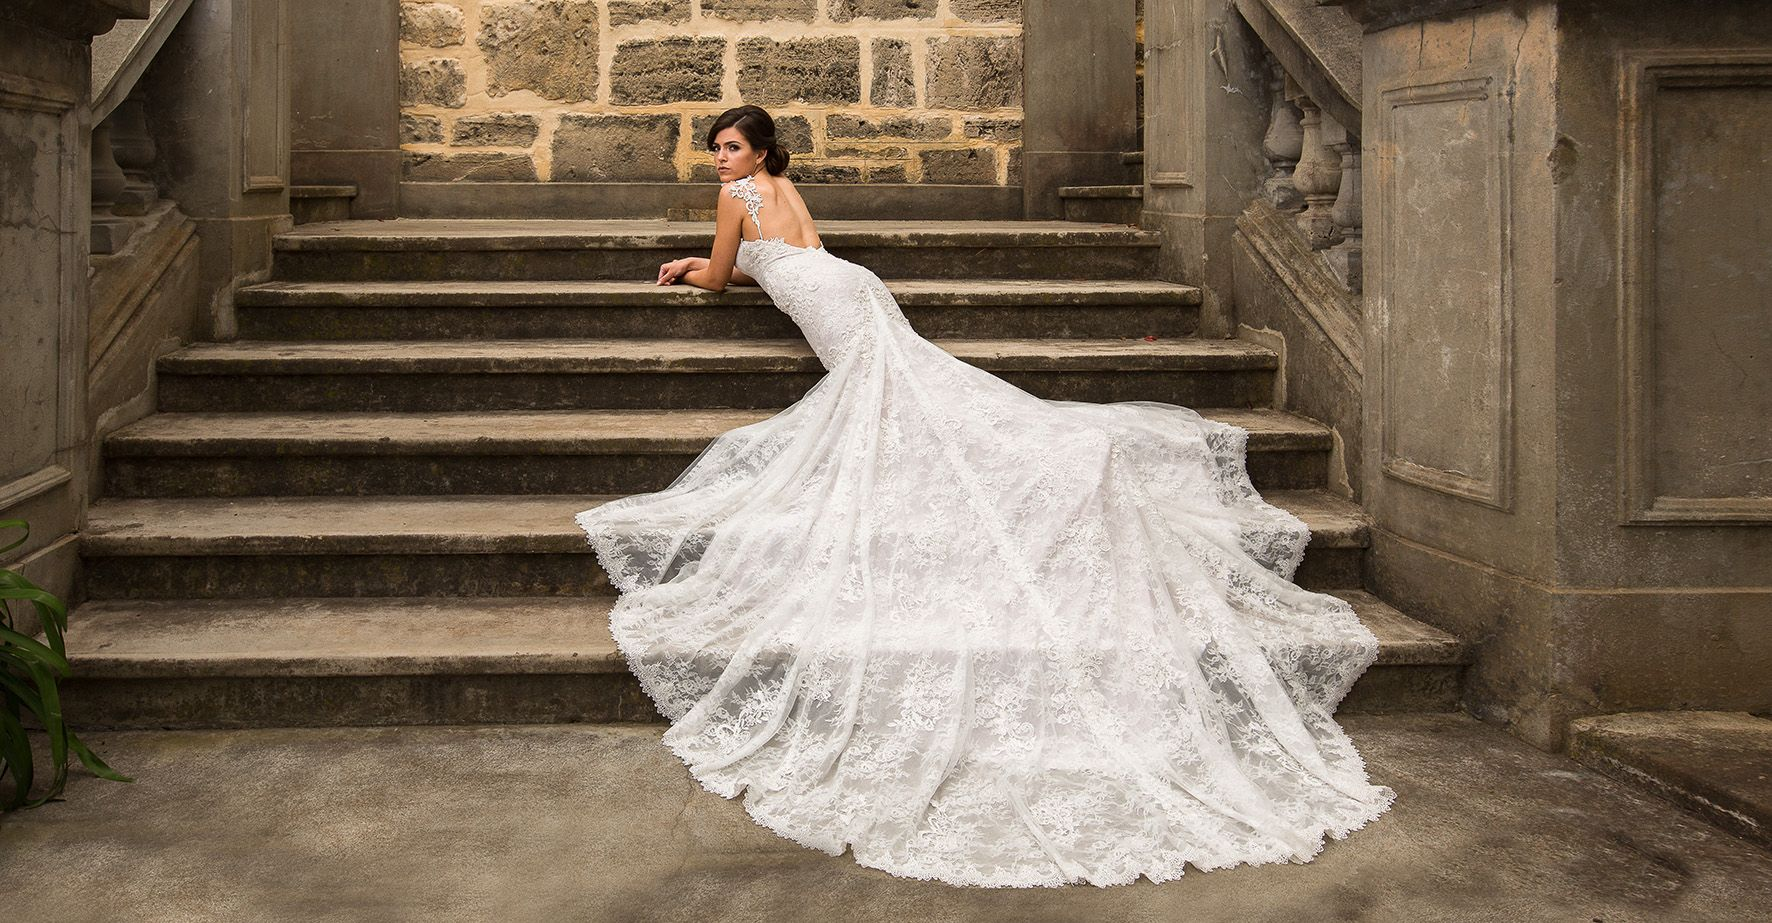 New exciting Zavana range coming soon to Pearls Bridal in Guildford ...